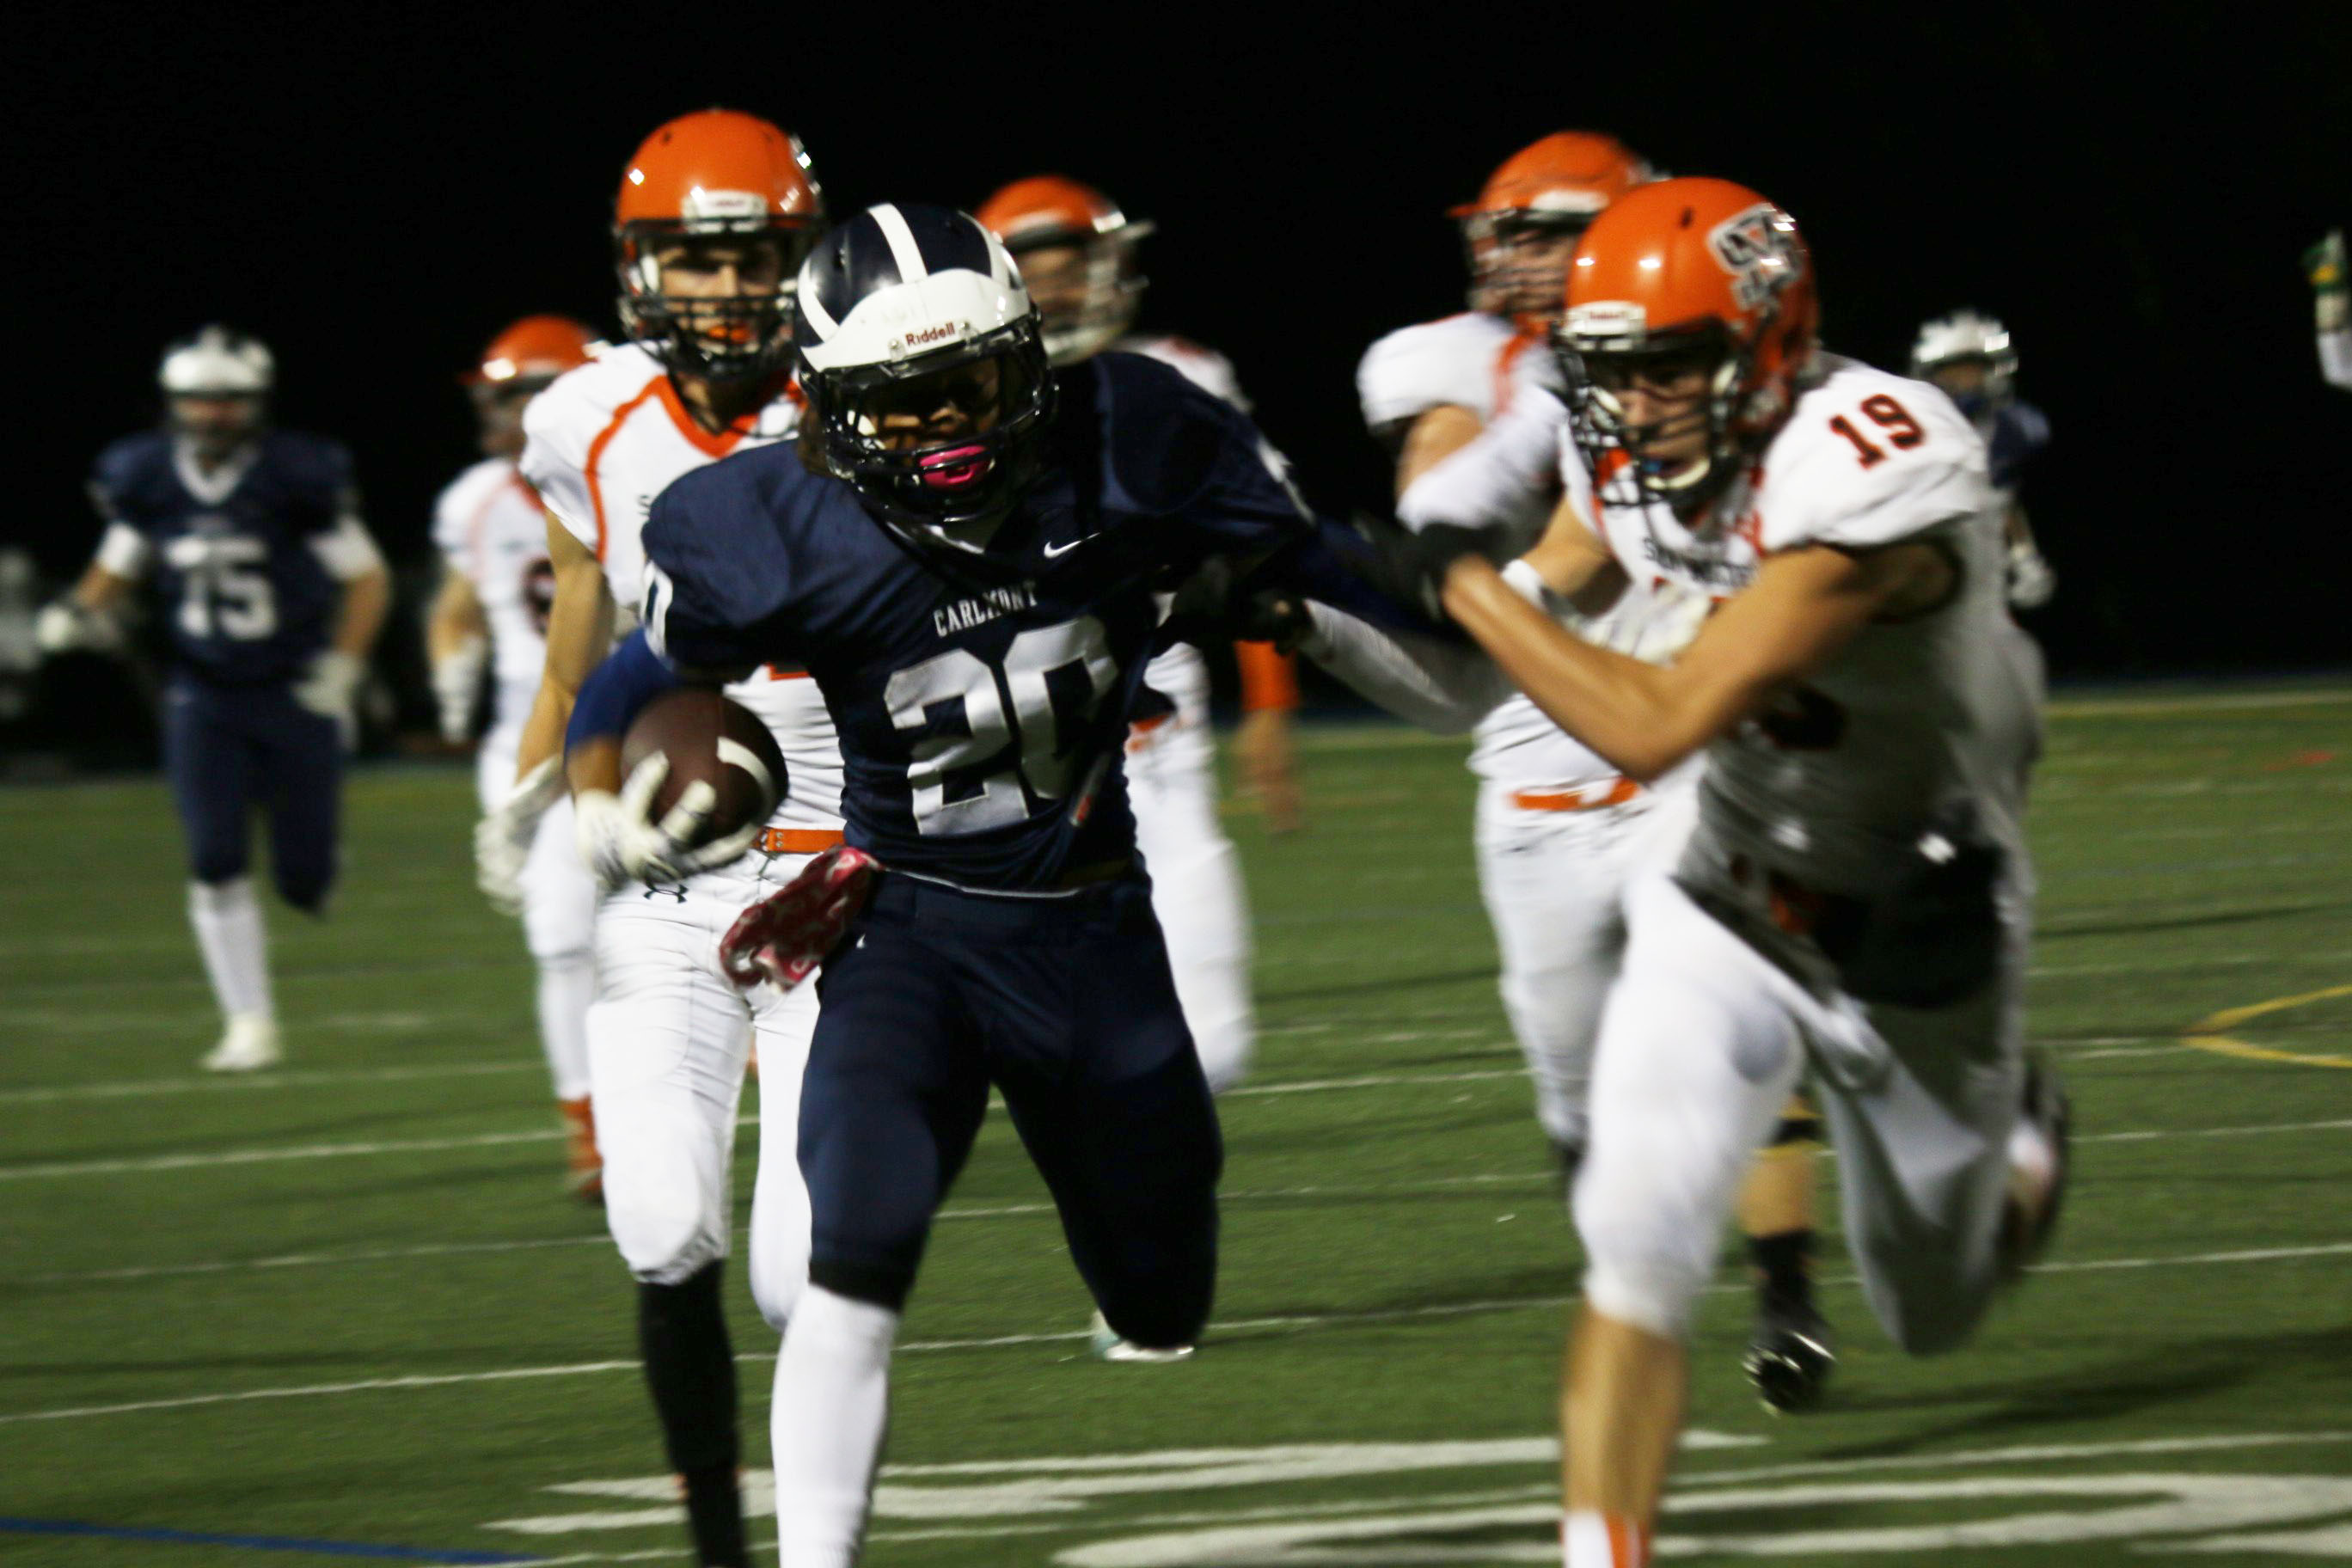 Tailback Devon Sagon deflects his San Mateo opponent as he carries the ball down the field for a first down.